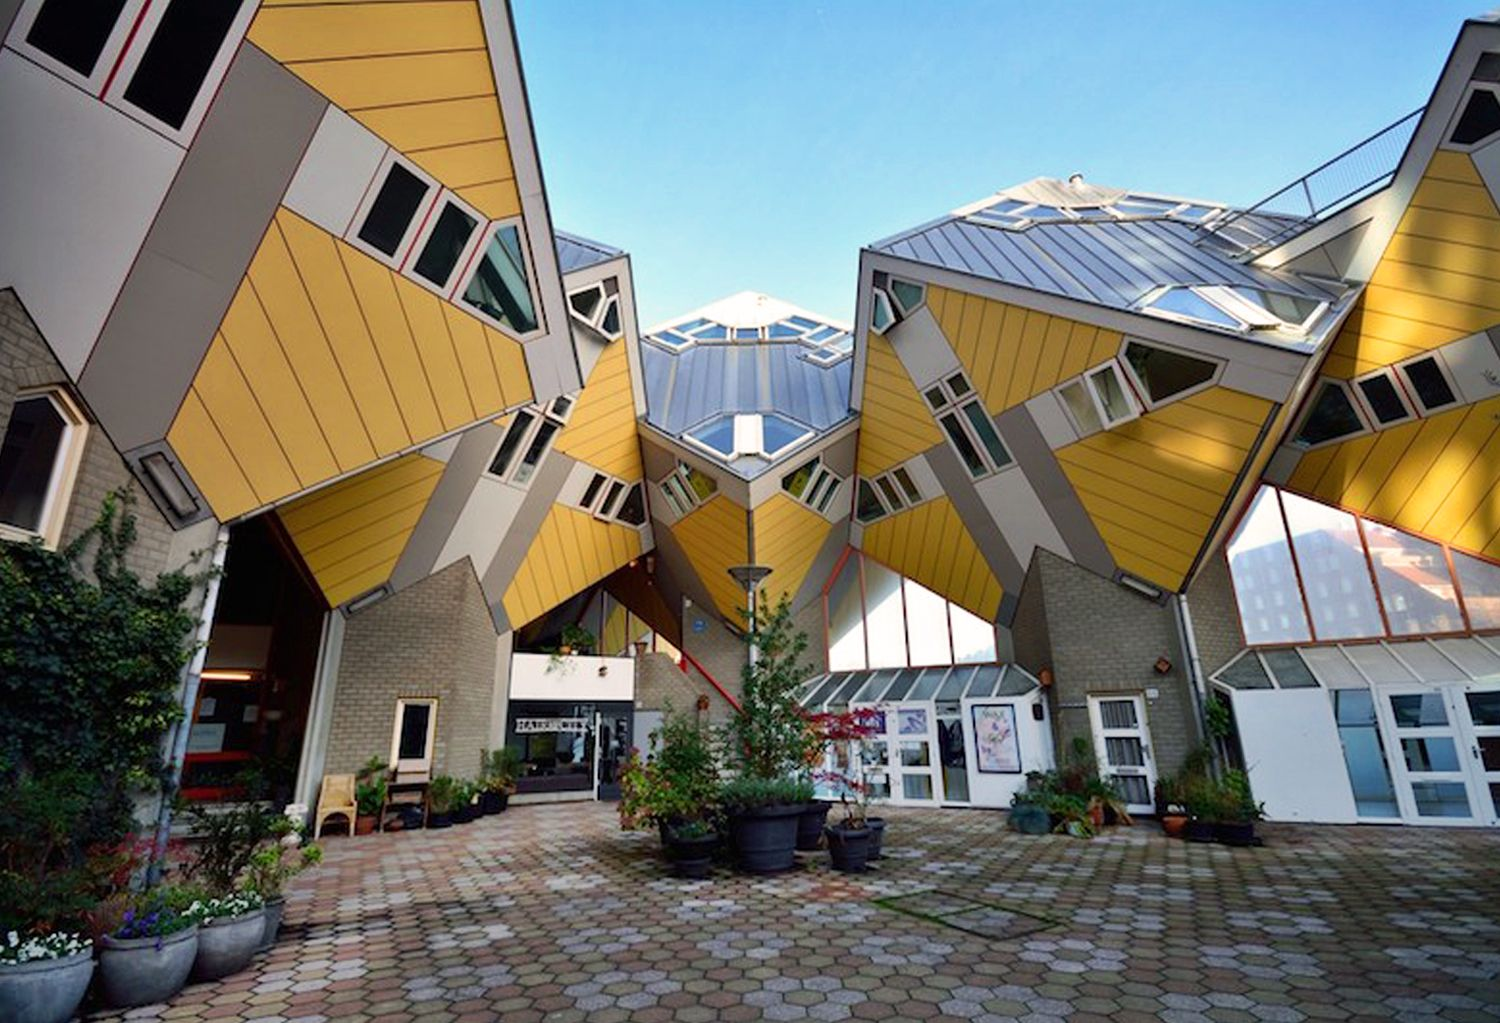 10 Impossibly Awesome Houses From All Around the World | Brain Berries